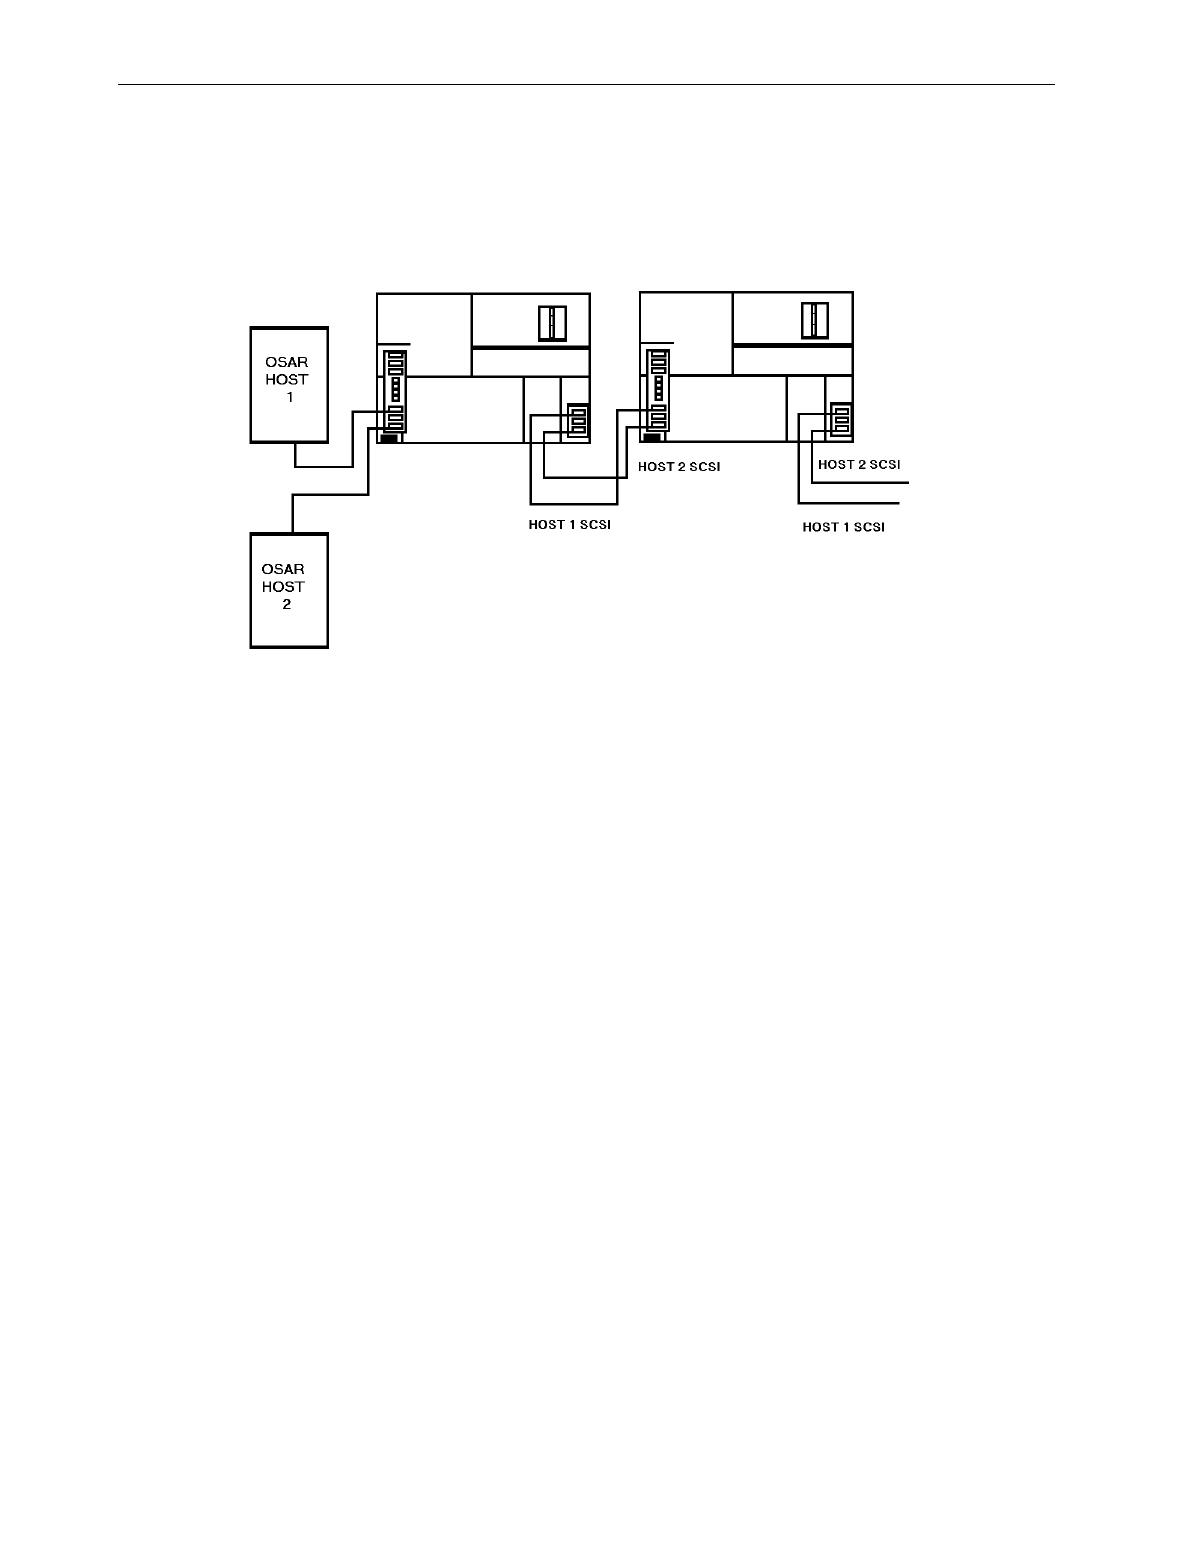 Osar107 Osar107maint Manual Diagram Furthermore Nema L6 30 Wiring On Serial Cable Chapter 3